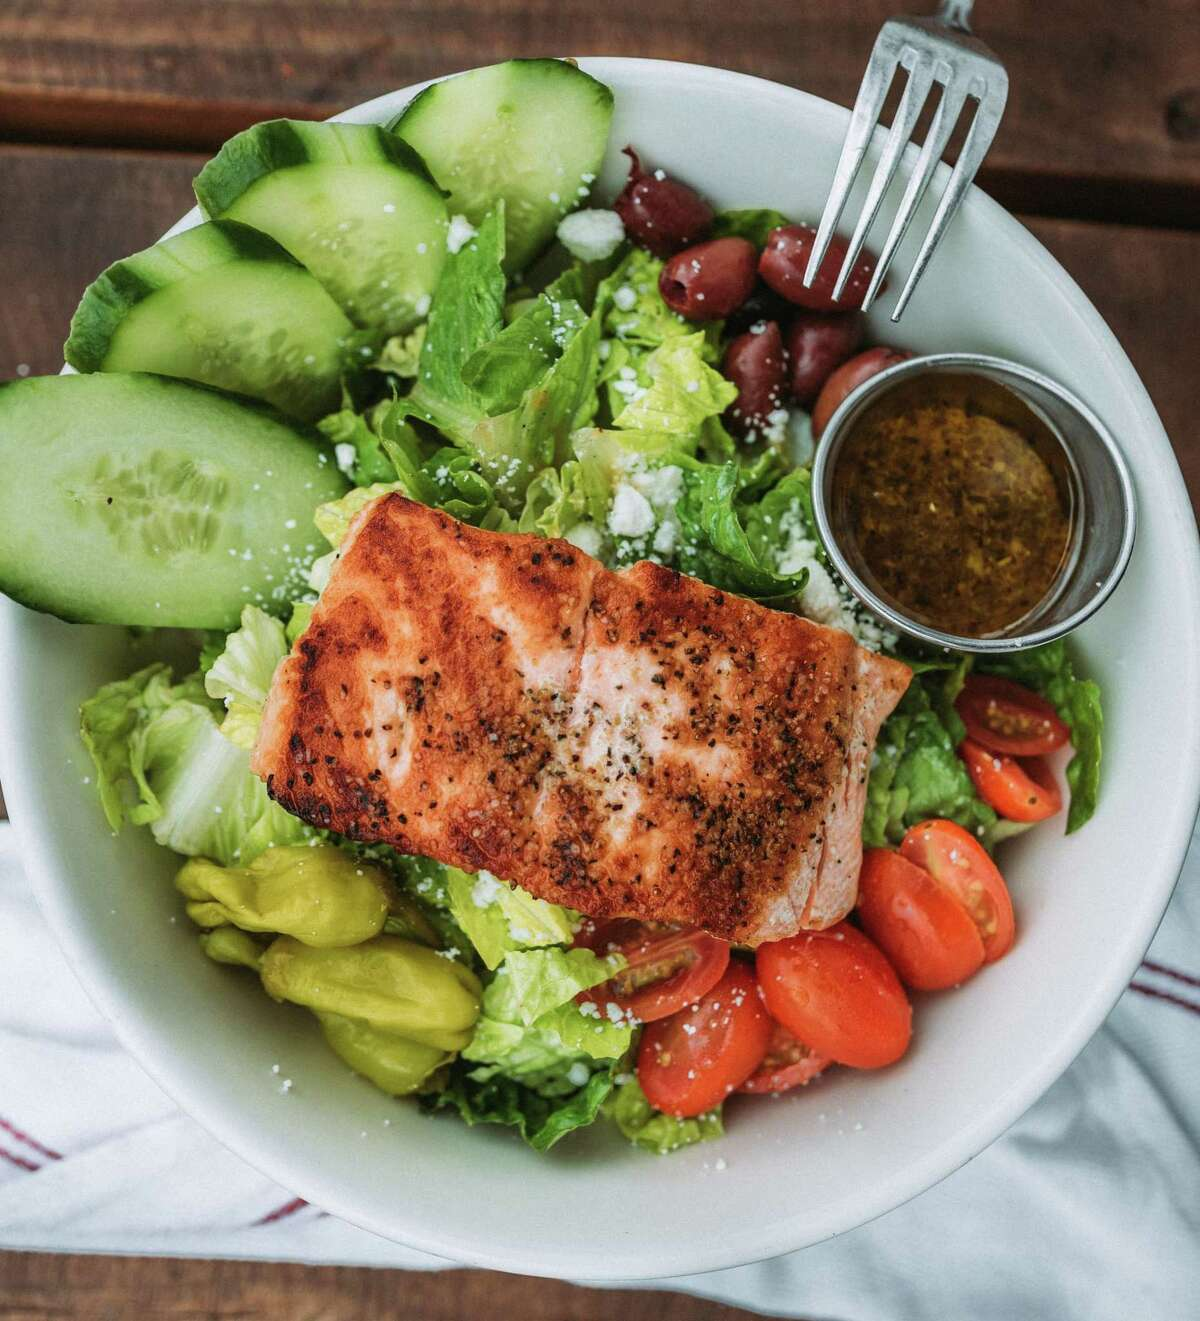 On the Kirb serves a Greek salmon salad made with Romaine, cucumbers, tomatoes, red onion, kalamata olives and feta.